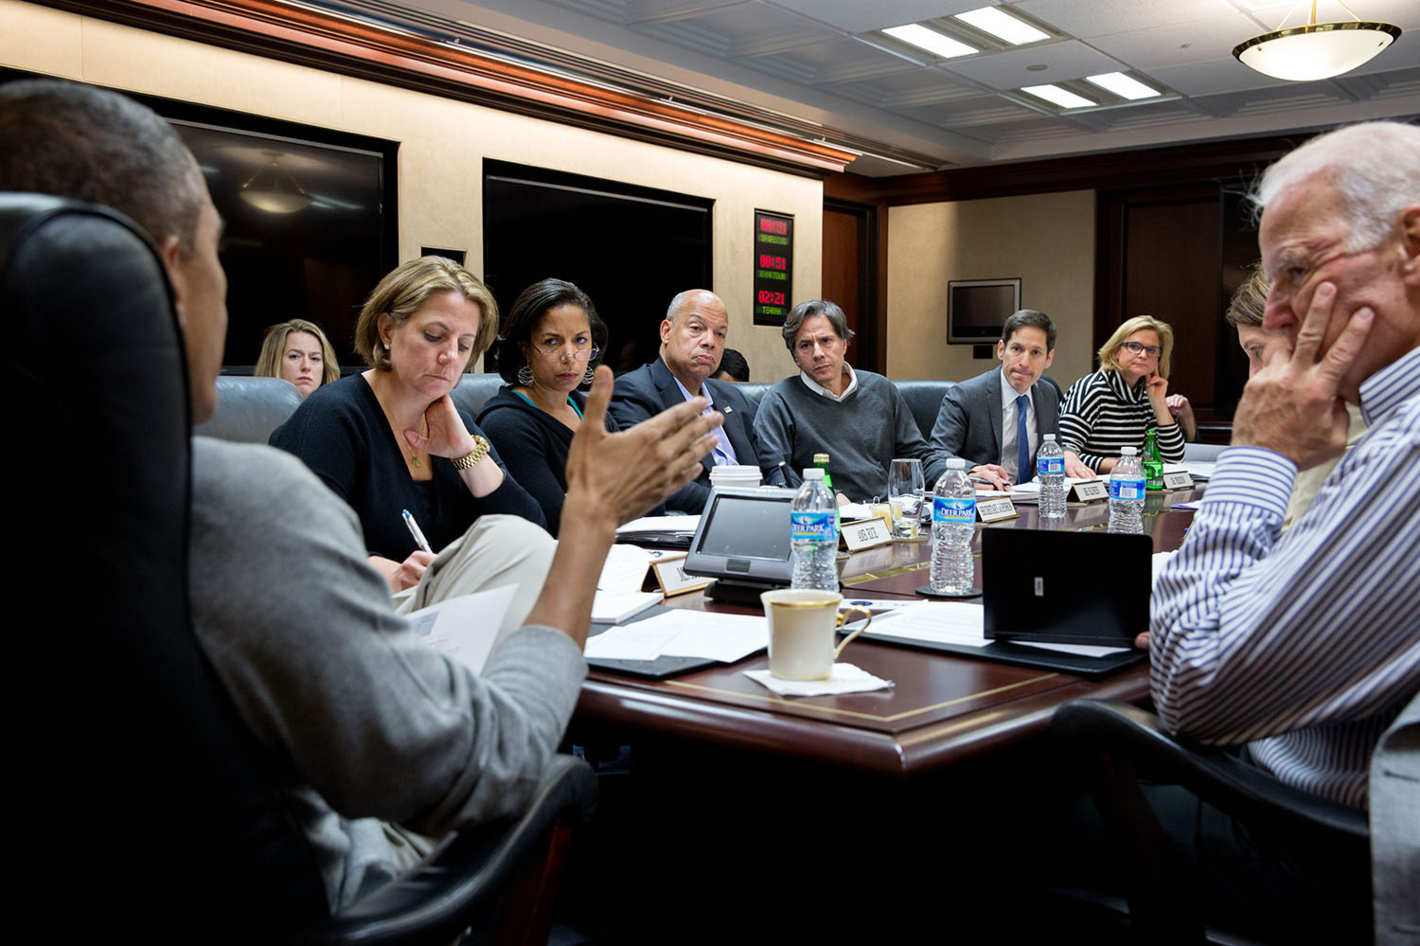 Obama meeting az Eboláról. Balról: Lisa Monaco, Susan E. Rice; Jeh Johnson; Tony Blinken; Thomas Frieden; Jennifer Palmieri; Sylvia Mathews Burwell. (Pete Souza/The White House)